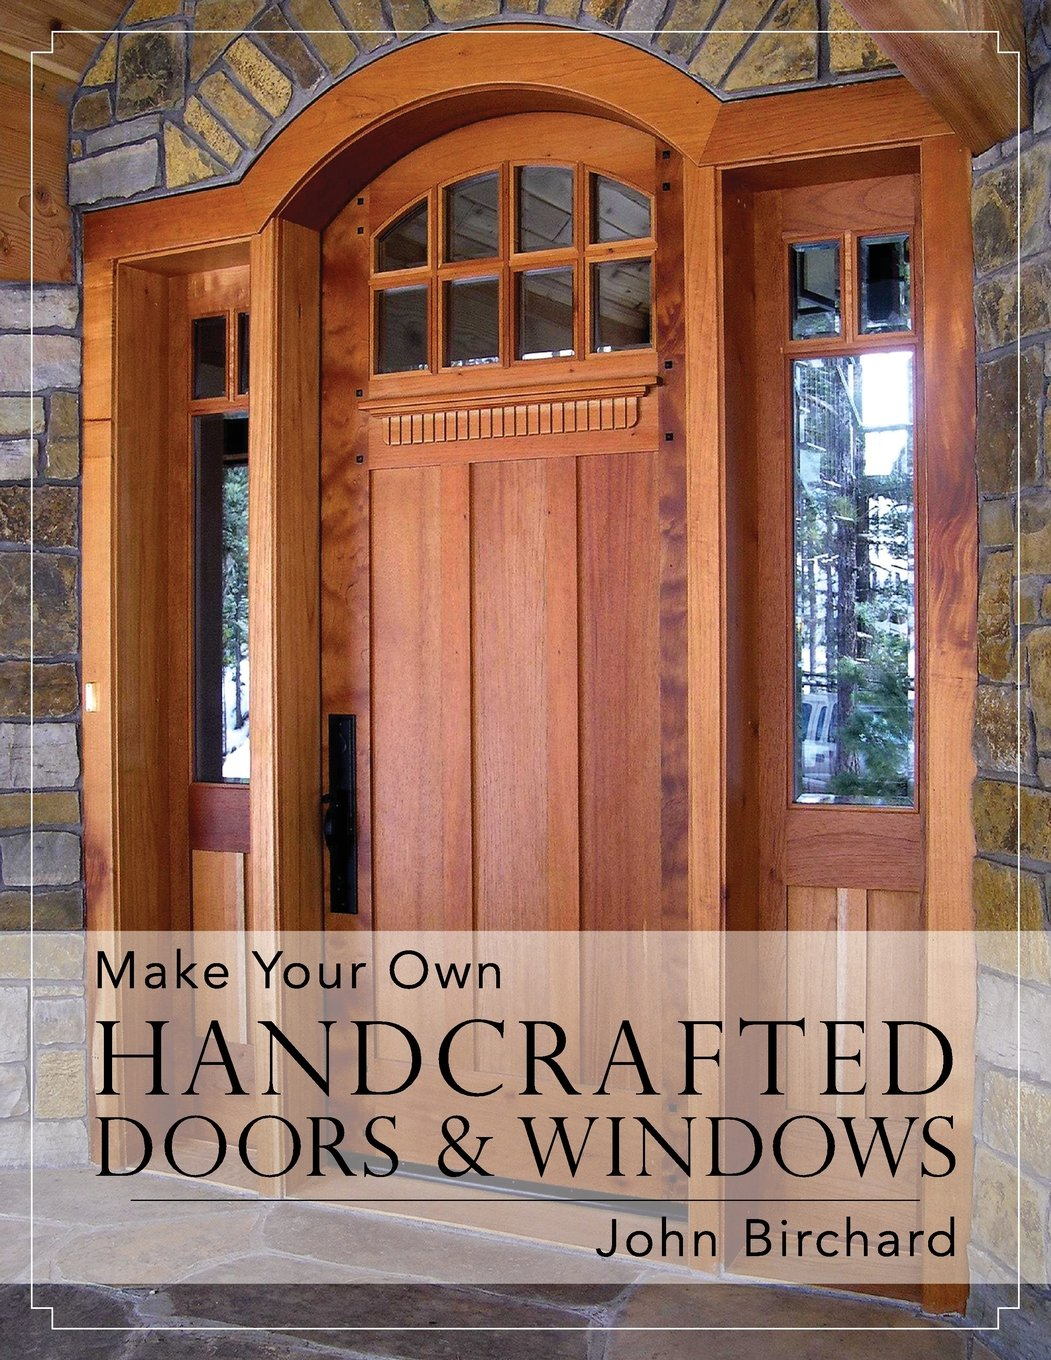 Make Your Own Handcrafted Doors \u0026 Windows: John Birchard: 9781626548787: Amazon.com: Books & Make Your Own Handcrafted Doors \u0026 Windows: John Birchard ... Pezcame.Com